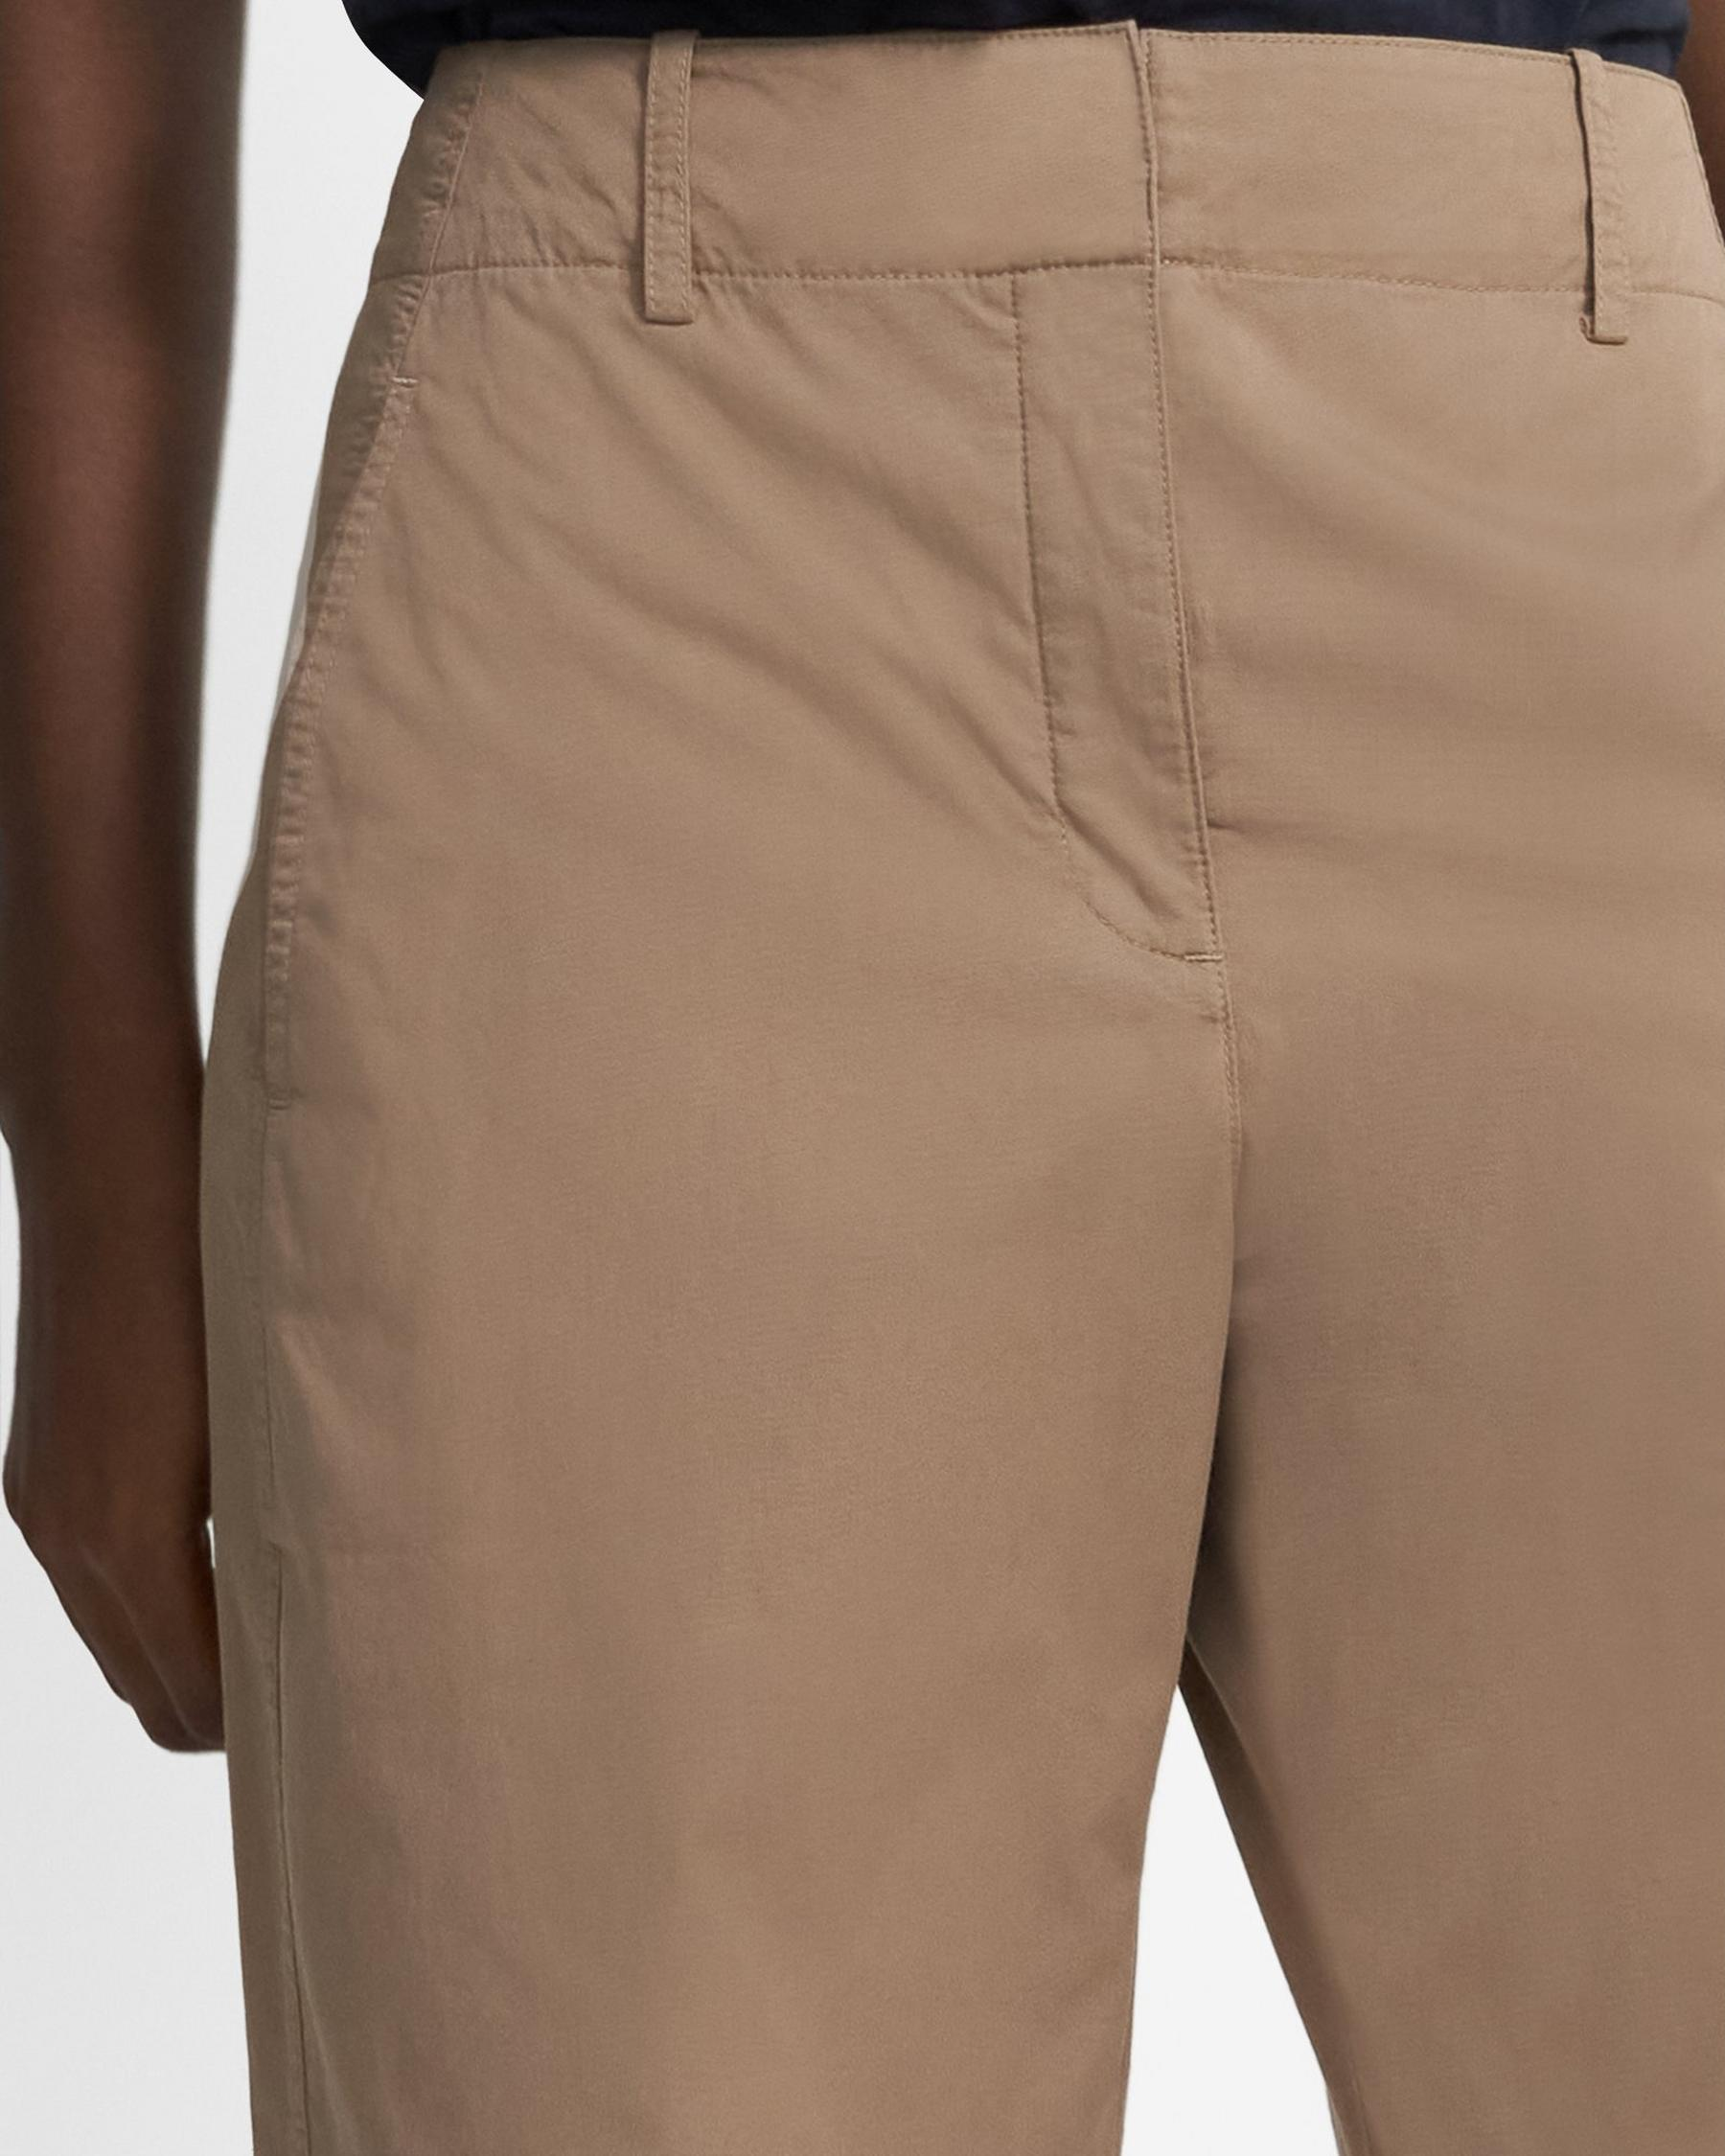 Curve Pant in Garment-Dyed Cotton 1